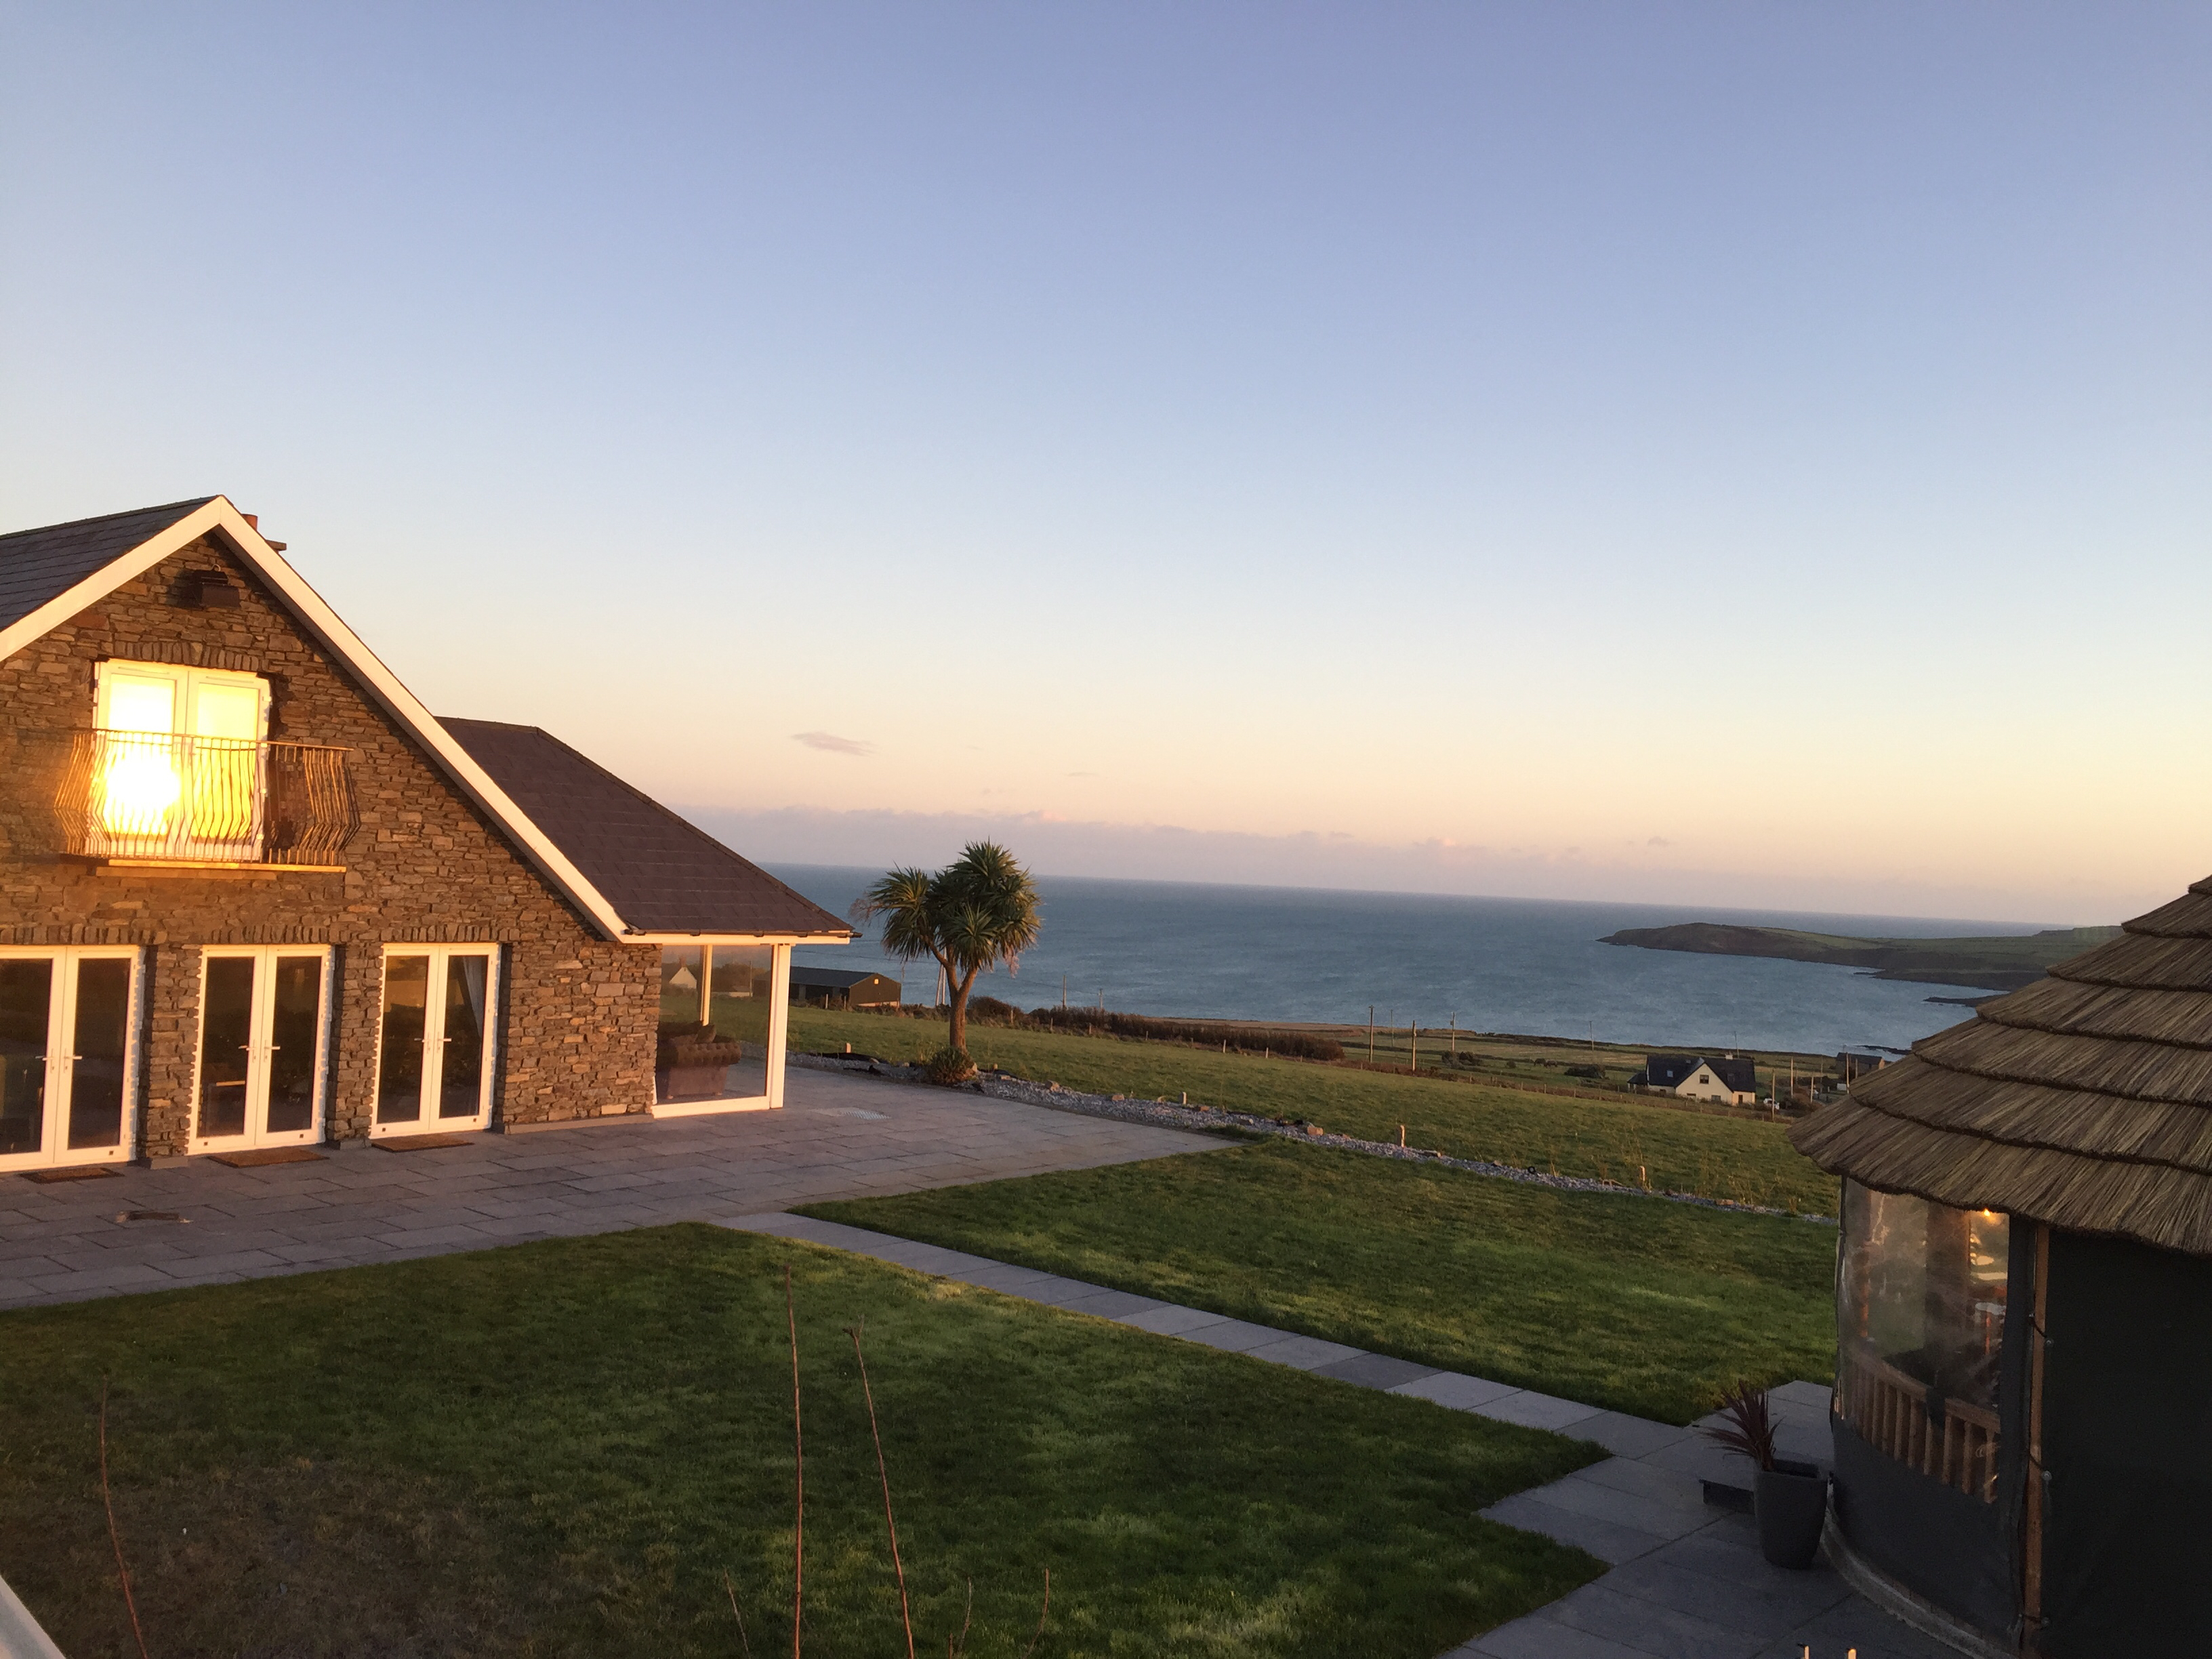 Self Catering Holiday Homes in Kinsale West Cork Co. Cork